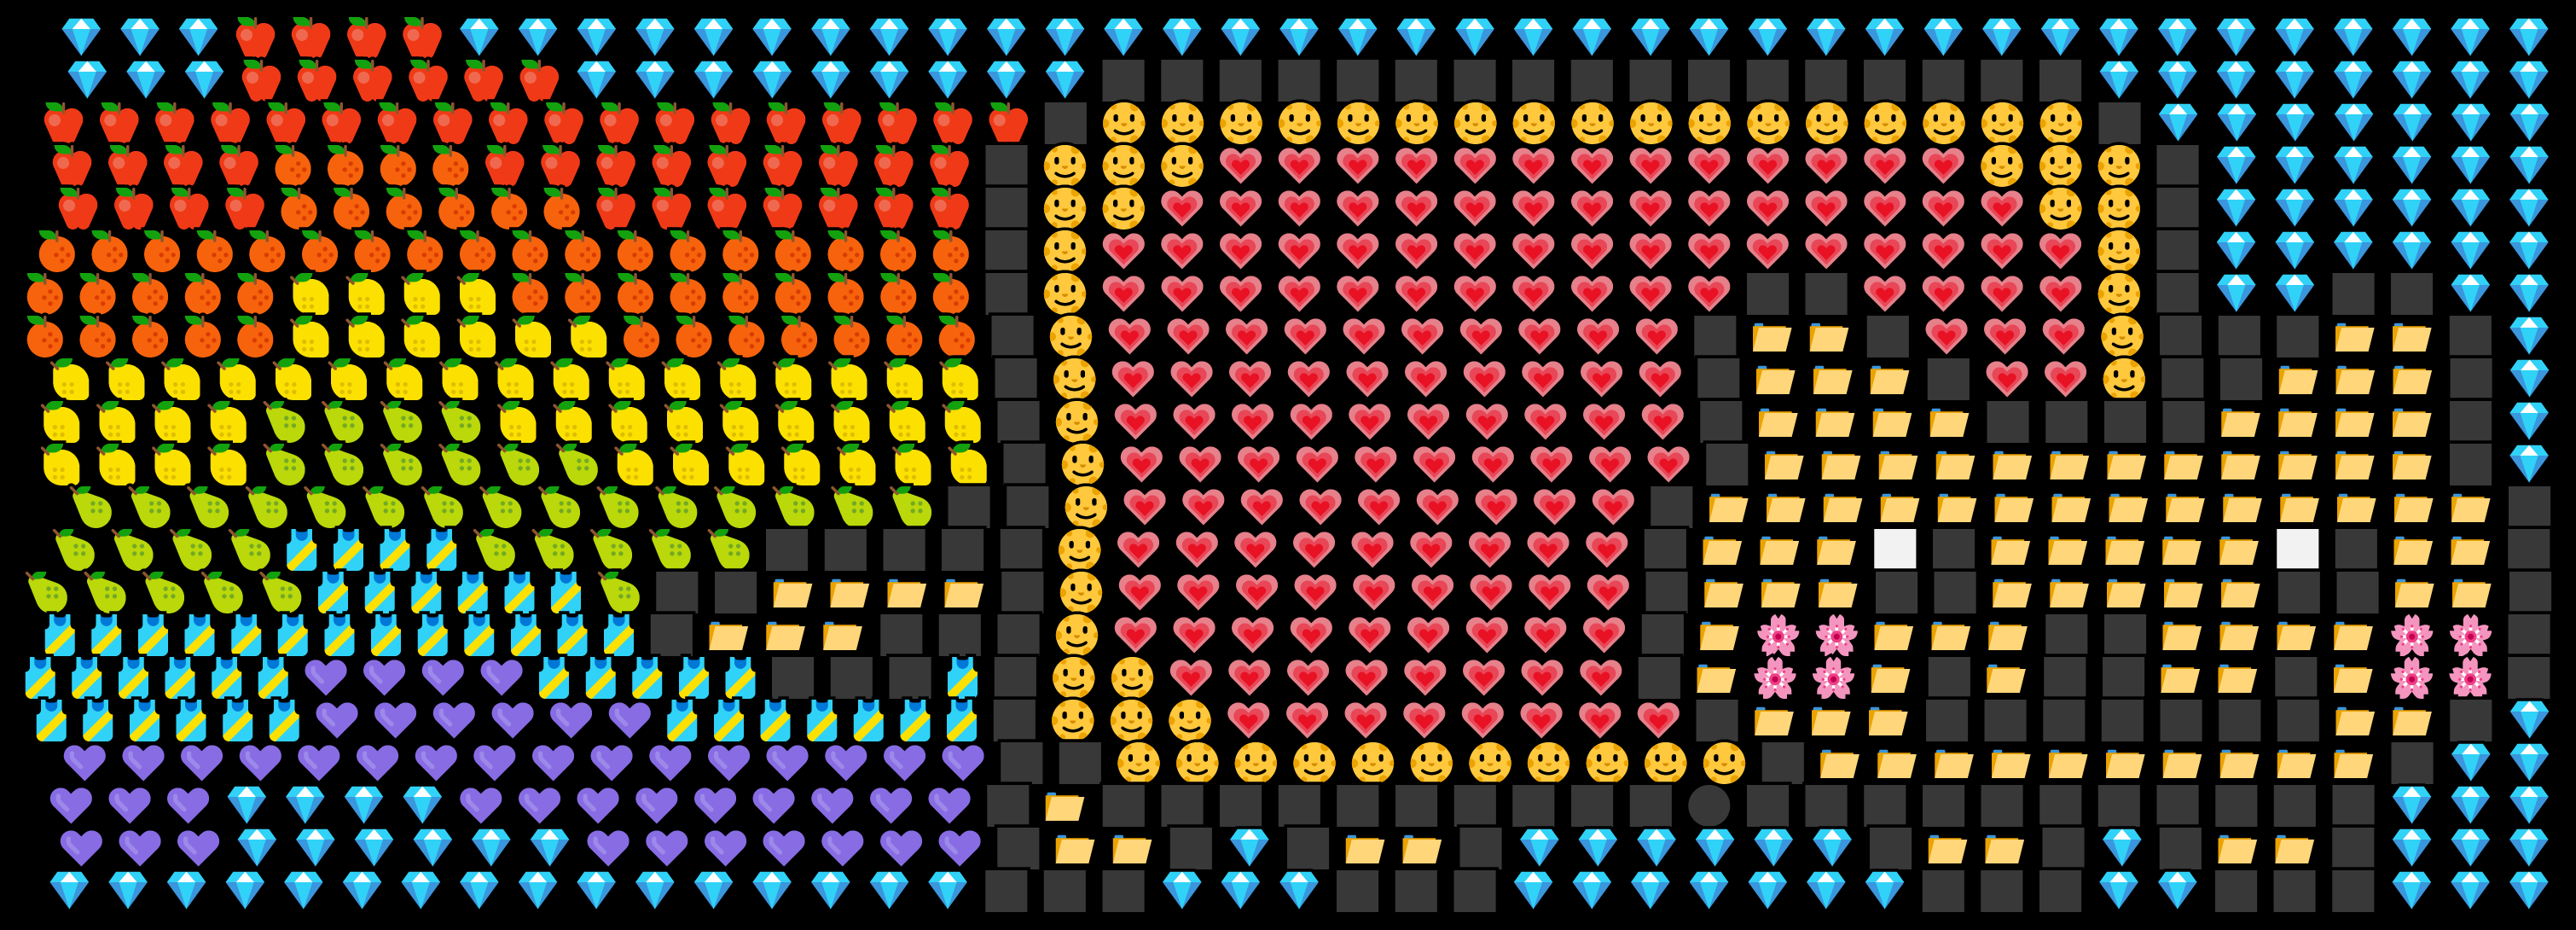 This example draws the well-known Nyan Cat Internet meme from various Unicode emojis. It uses hearts, fruits, gemstones, flowers, and other emoticons as individual colorful pixels. It sets the black color for the background and aligns all emojis to the right side as that's the direction where the cat is flying.